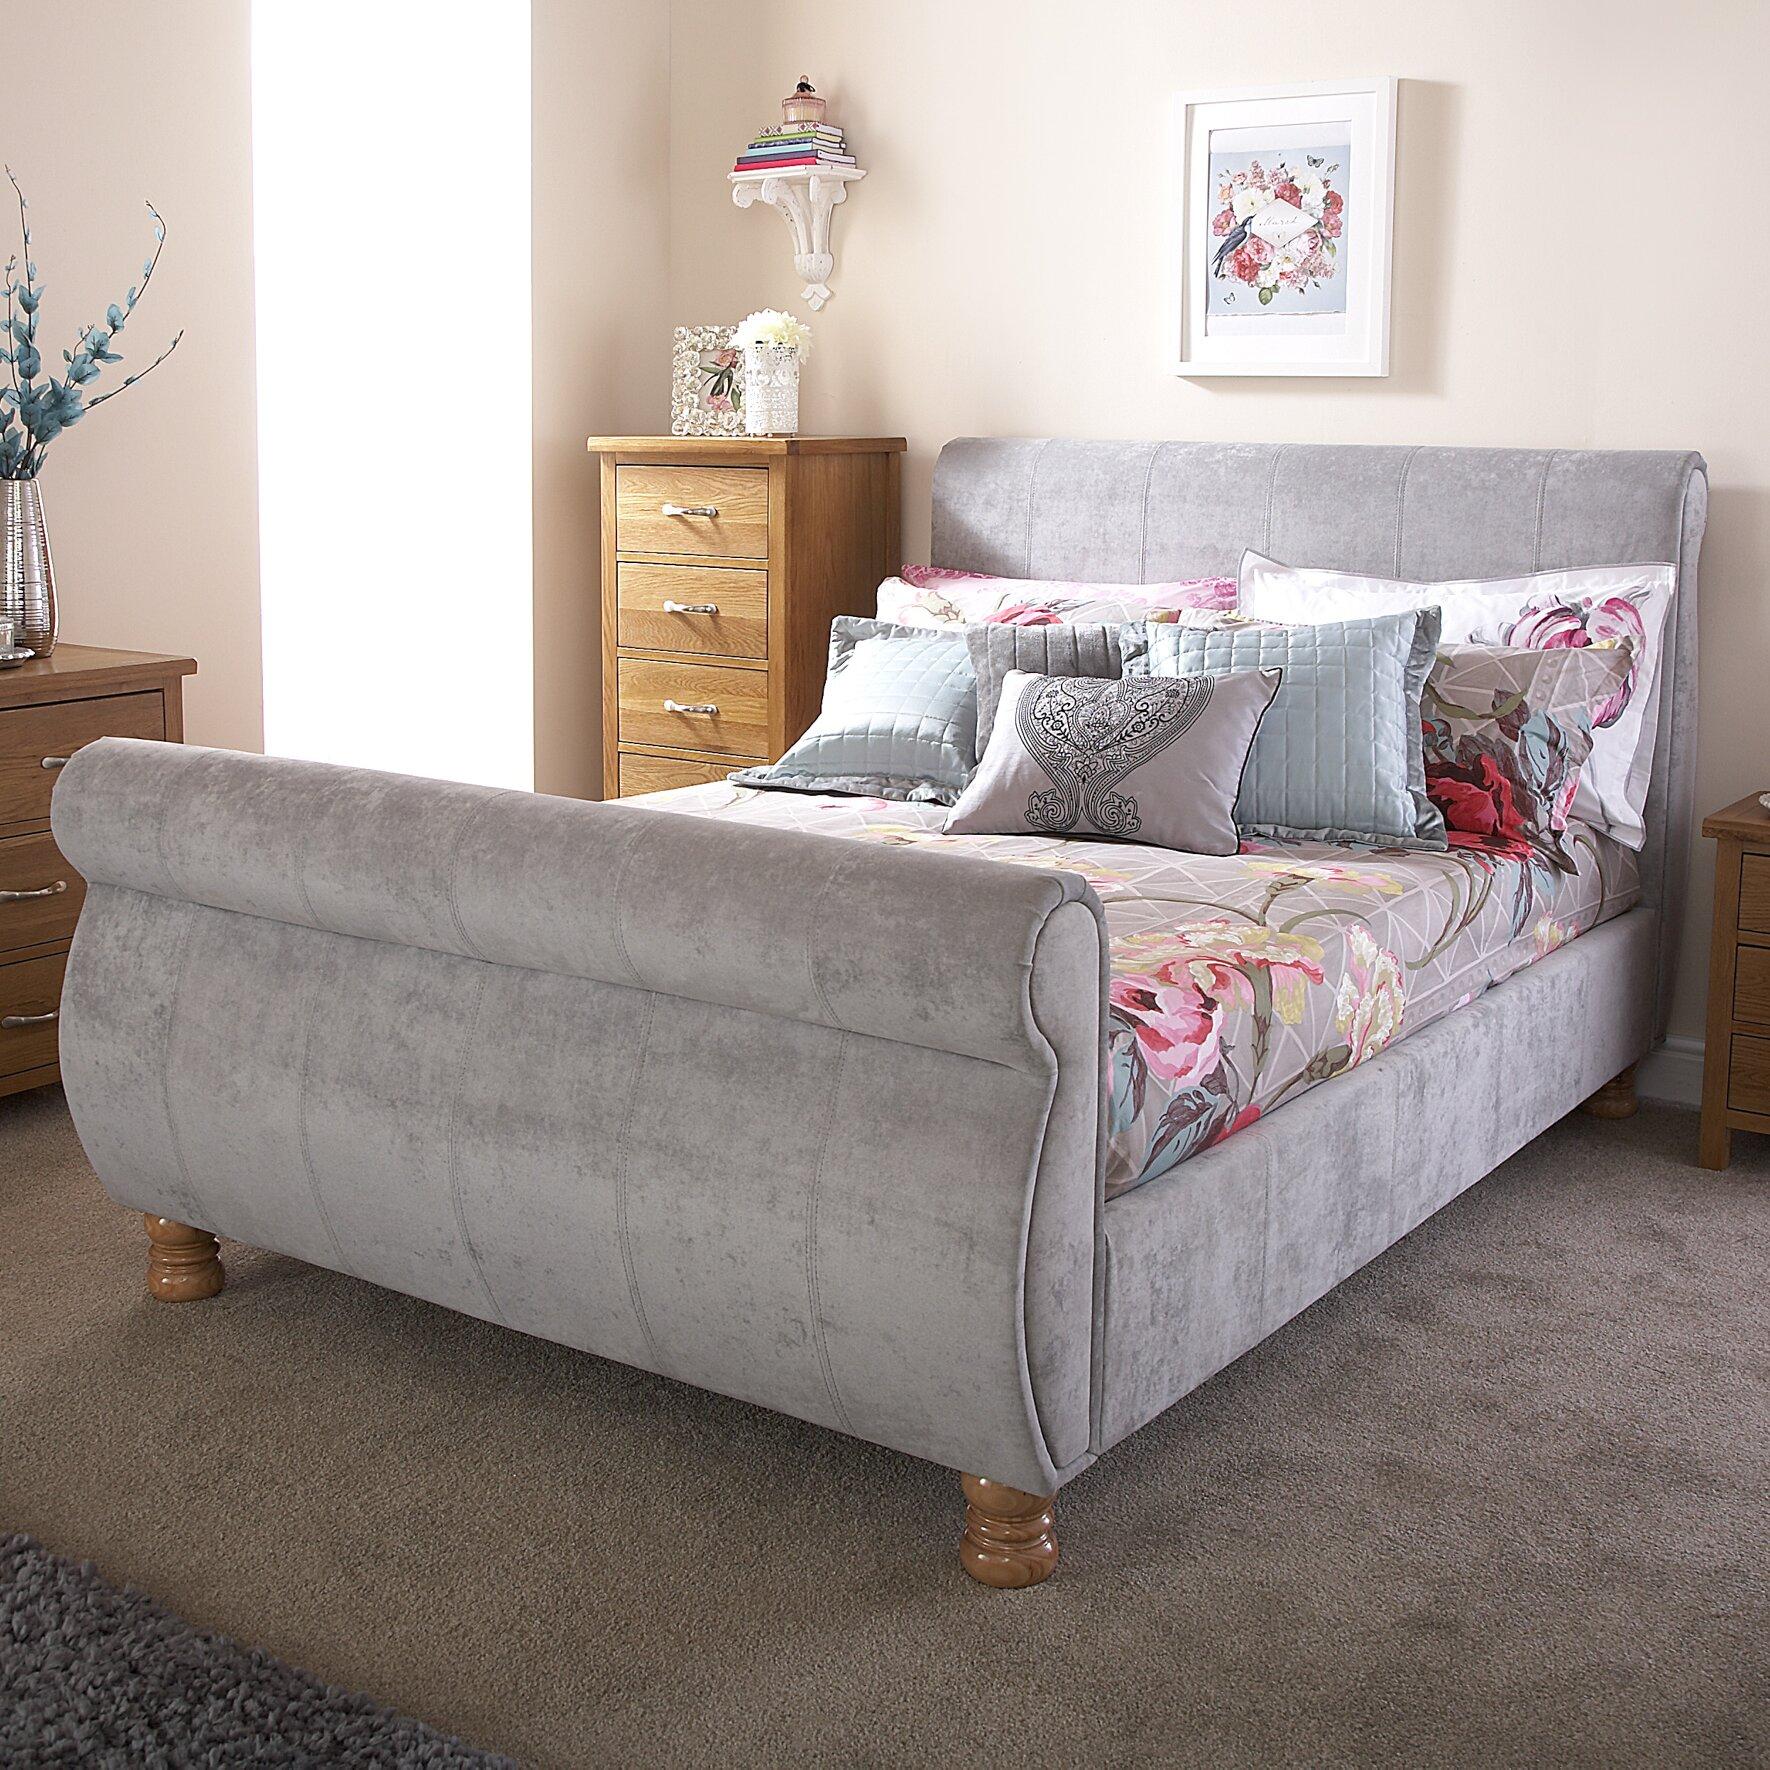 Home loft concept doris upholstered sleigh bed reviews for Concept beds